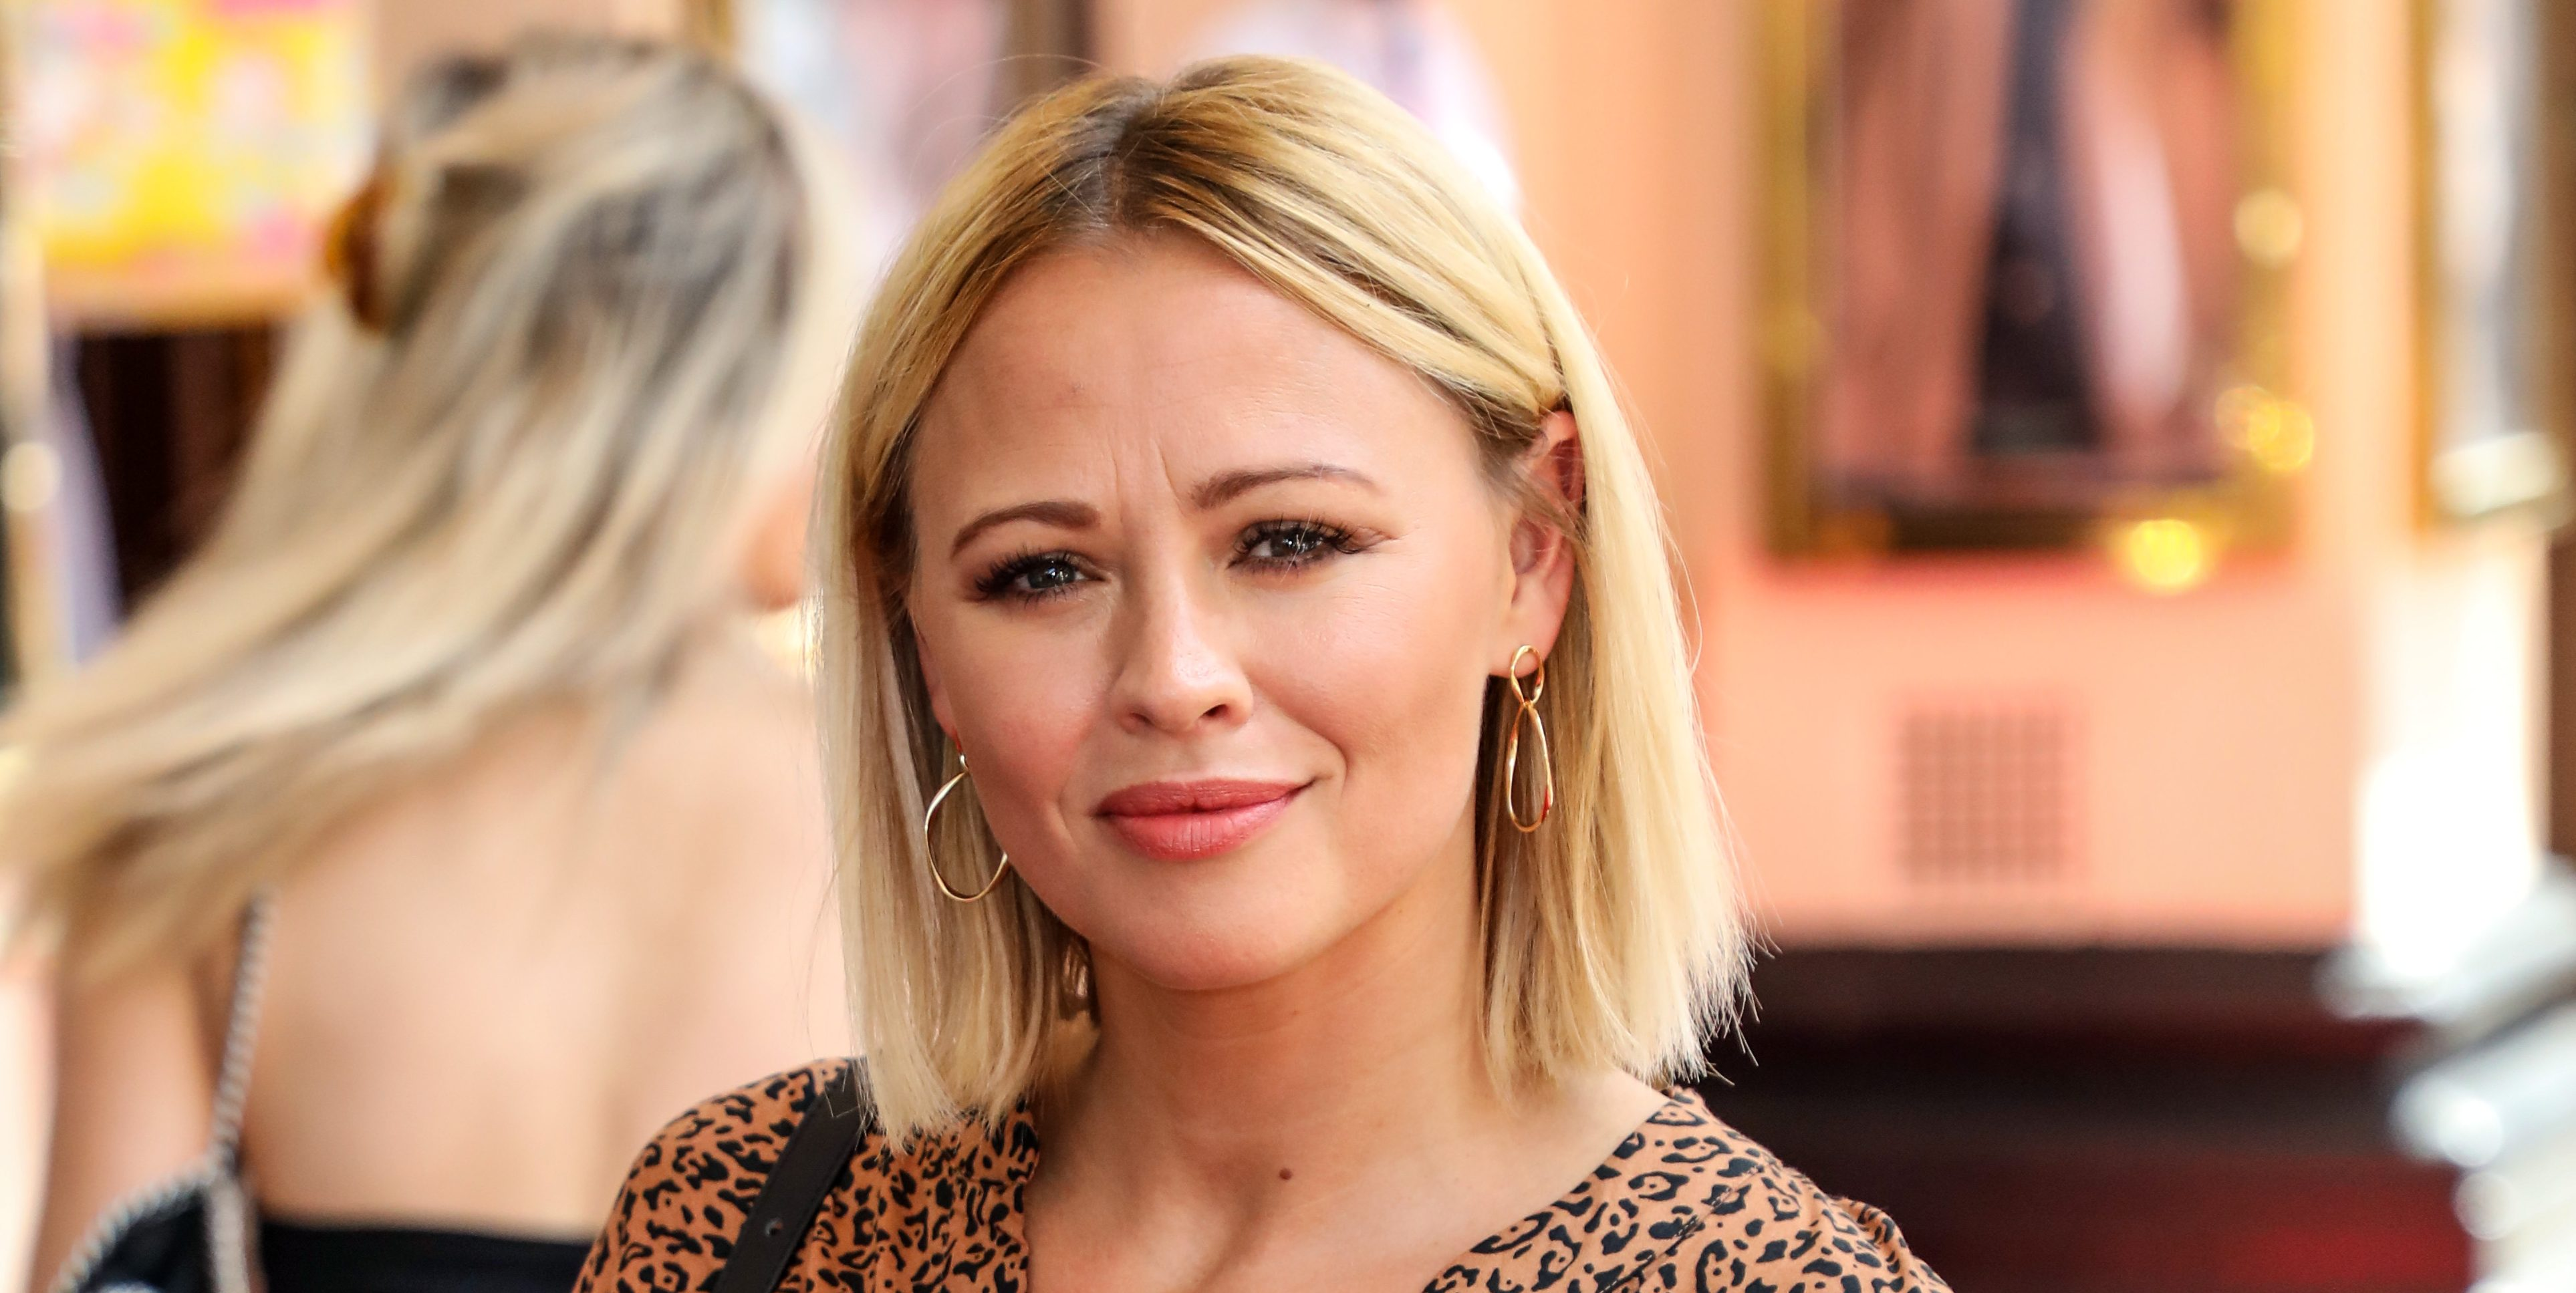 Fans say they're 'in love' with Kimberley Walsh's hair after star's latest TV appearance